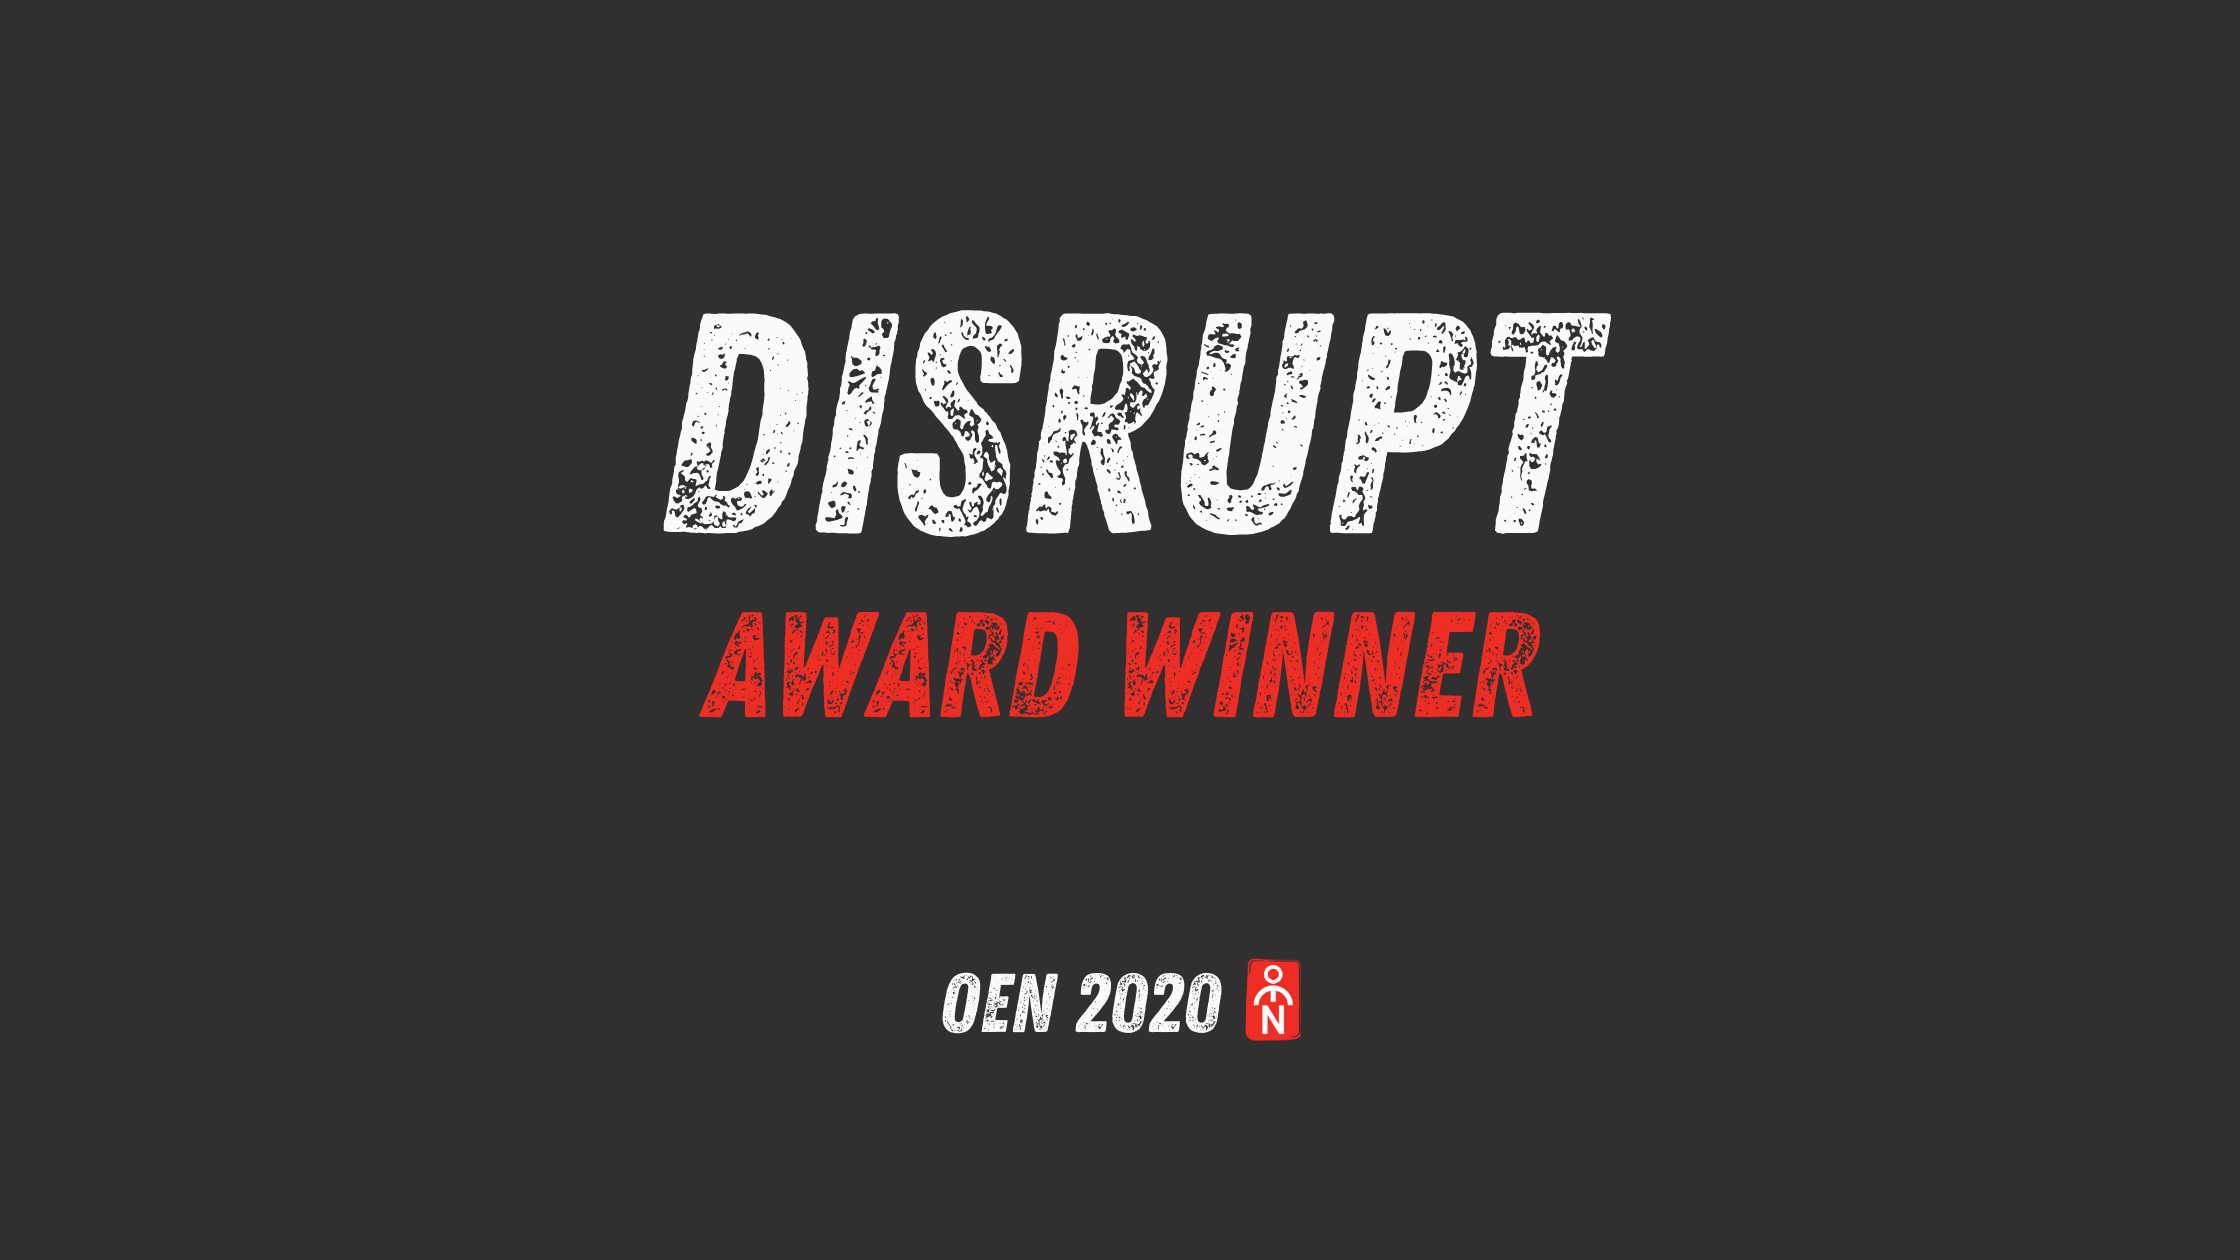 2020 OEN Entrepreneurship 'Disrupt' Award Winner